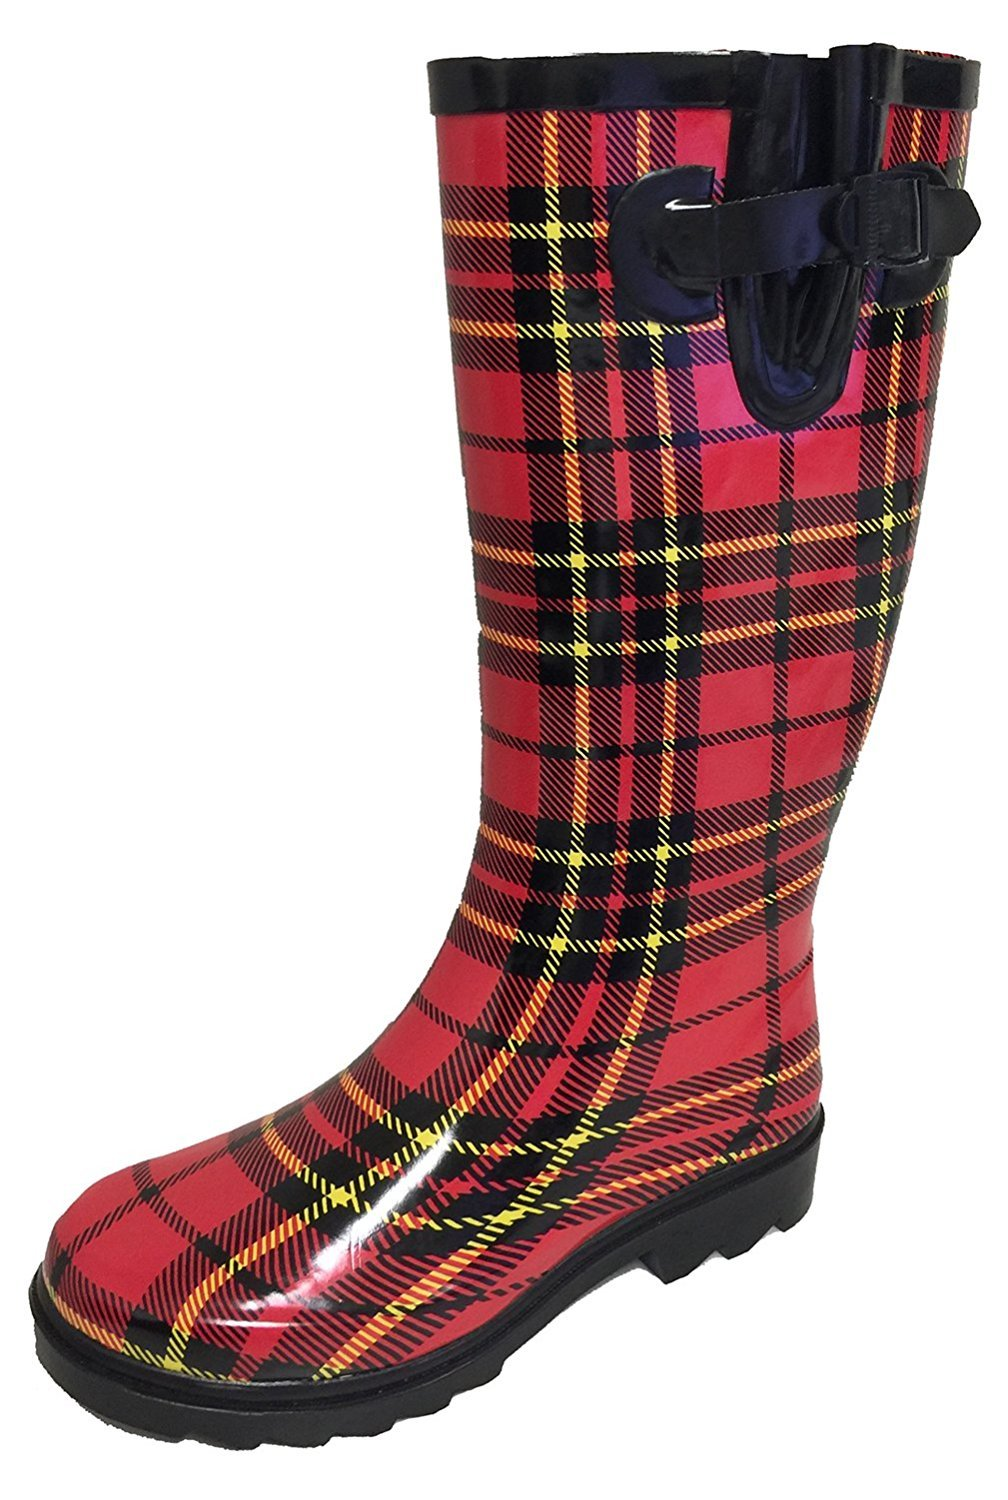 G4U Women's Rain Boots Multiple Styles Color Mid Calf Wellies Buckle Fashion Rubber Knee High Snow Shoes (7 B(M) US, Red/Black Plaid)